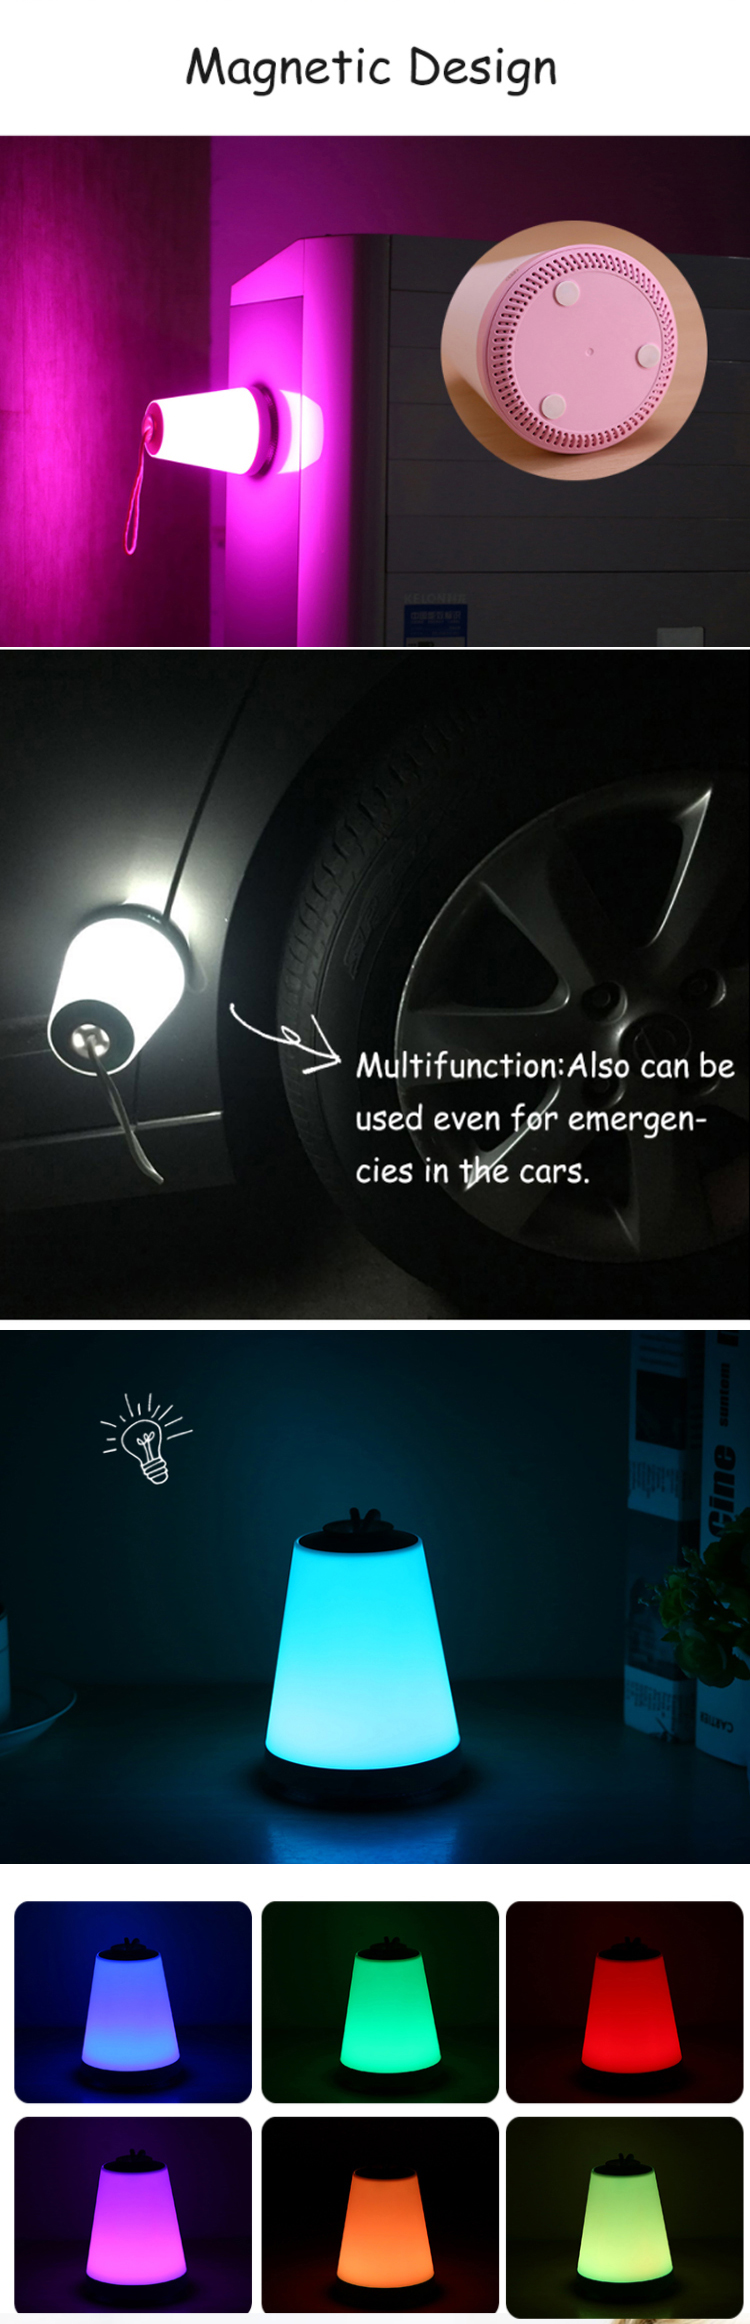 China hot sale multifunctional vehicle hanging portable rechargeable emergency lights with magnetic base